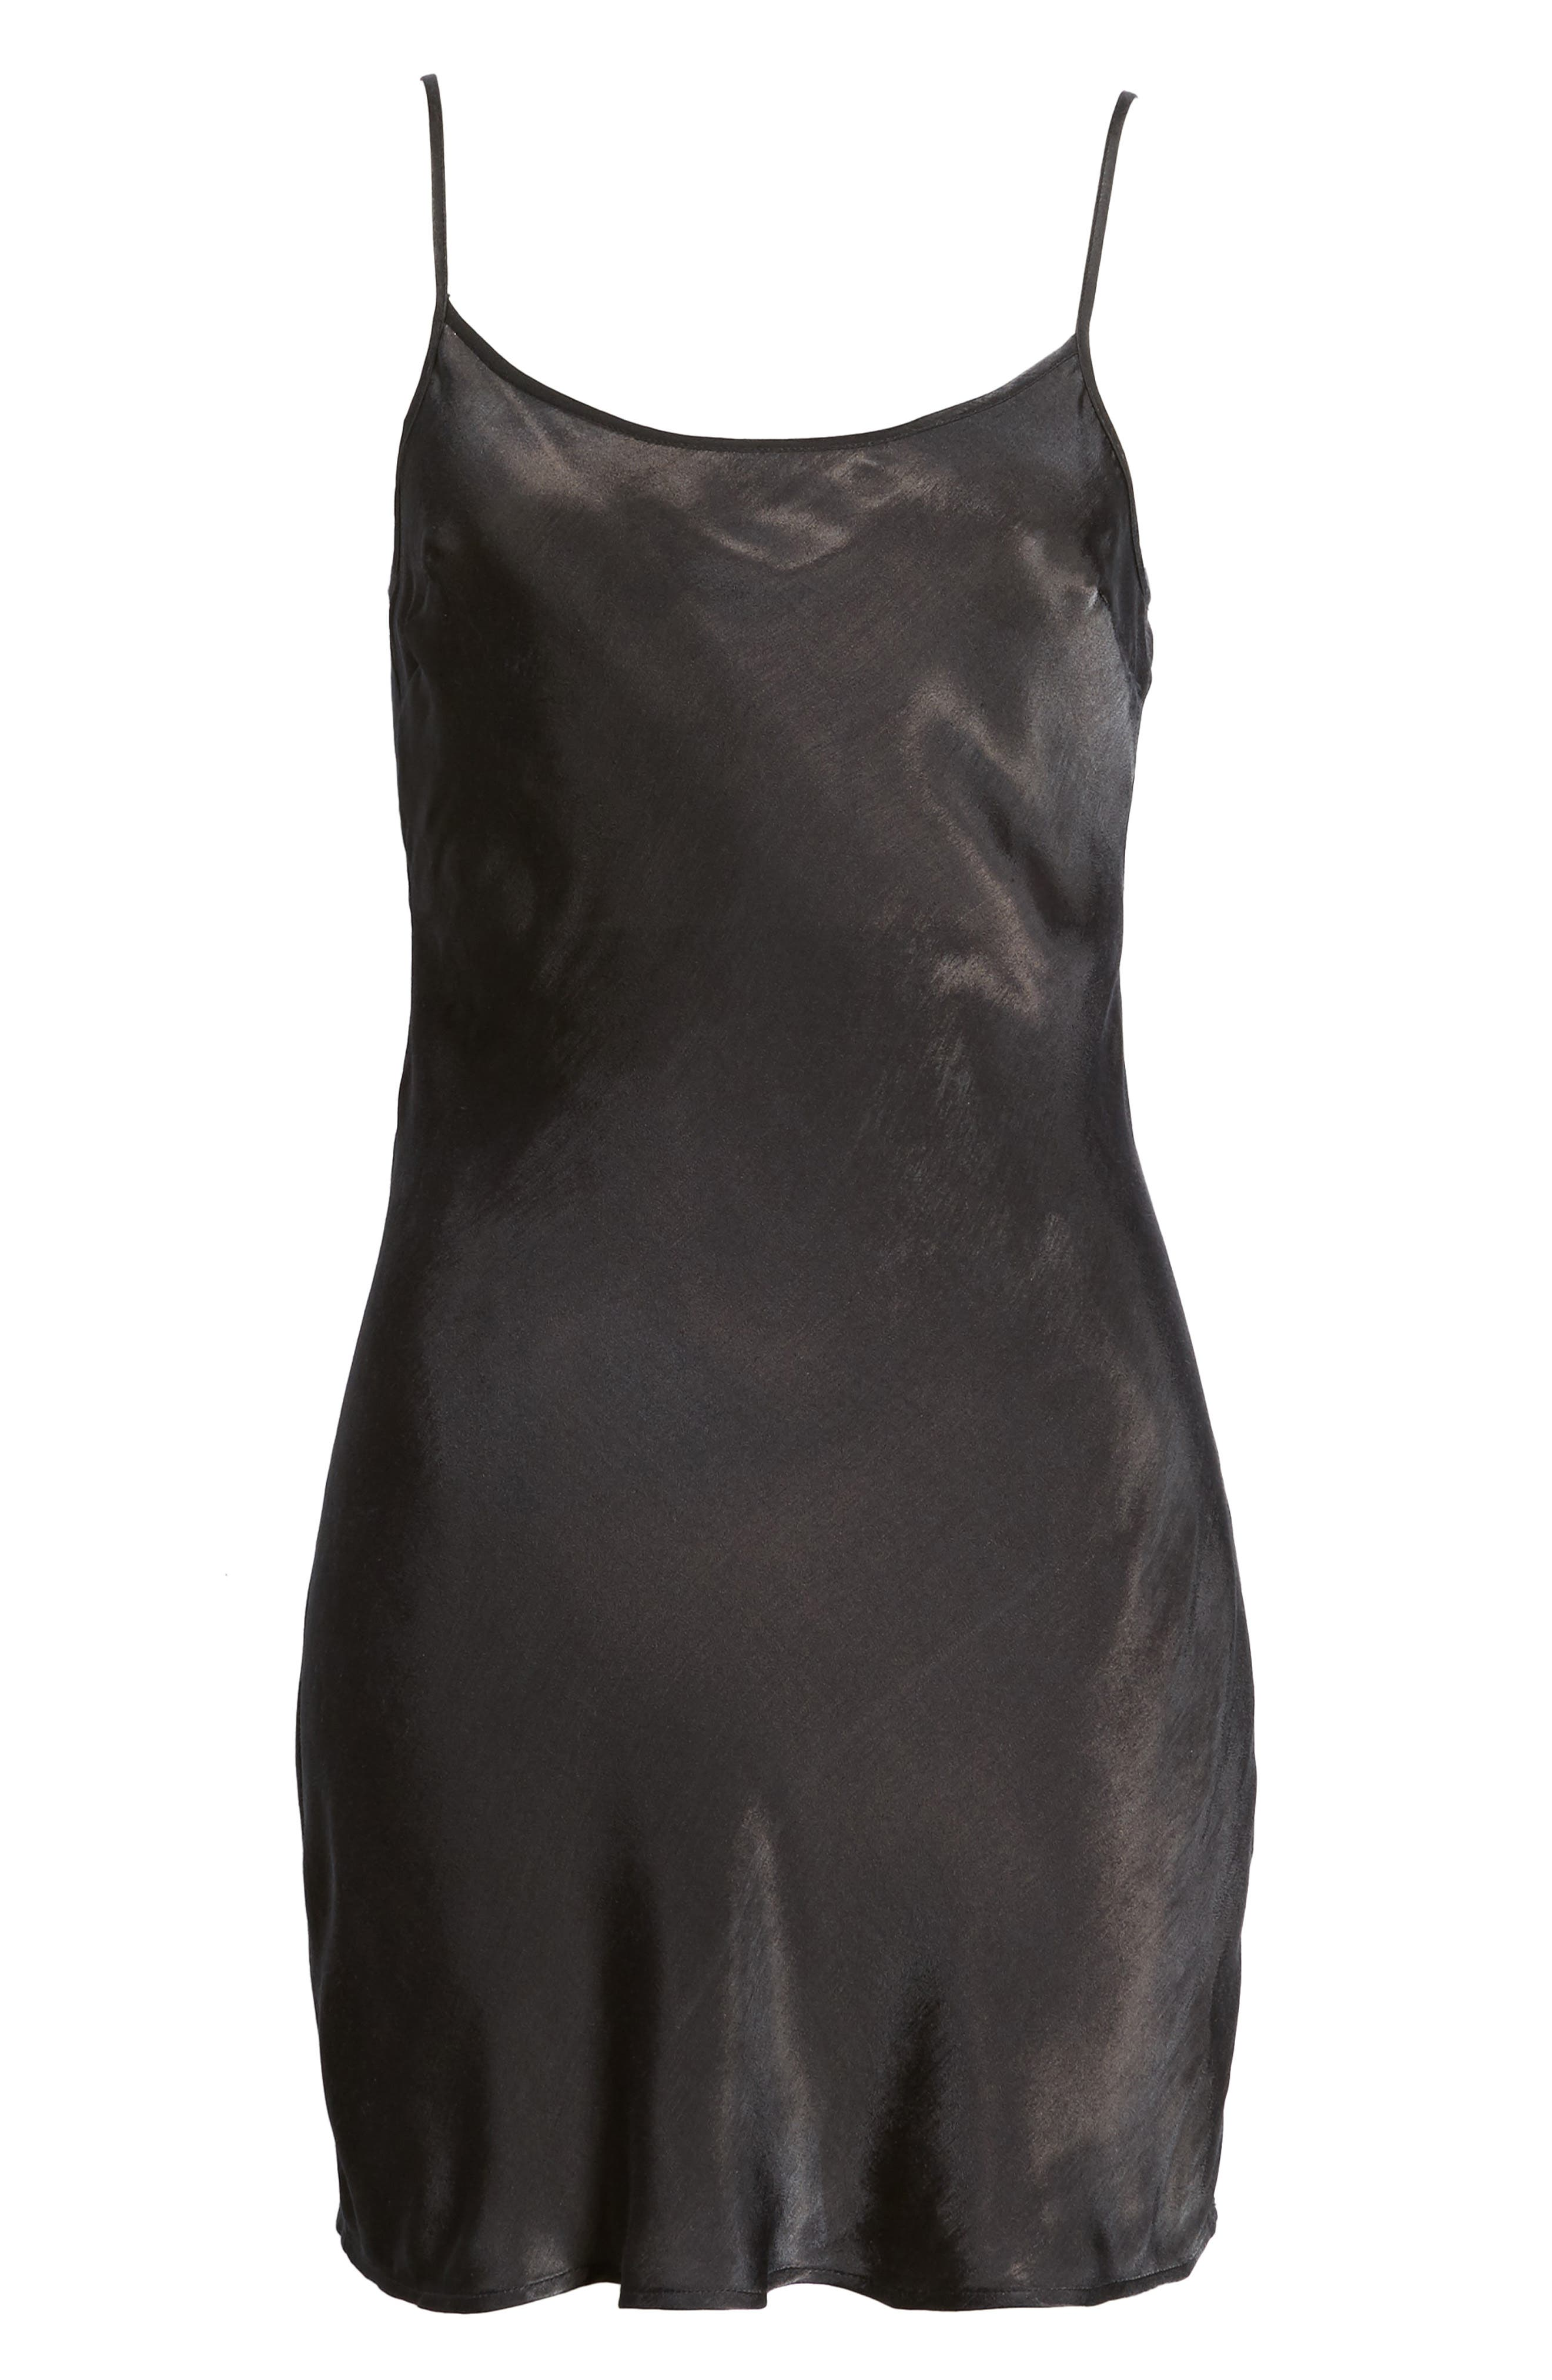 La Cienega Slipdress,                             Alternate thumbnail 6, color,                             Onyx